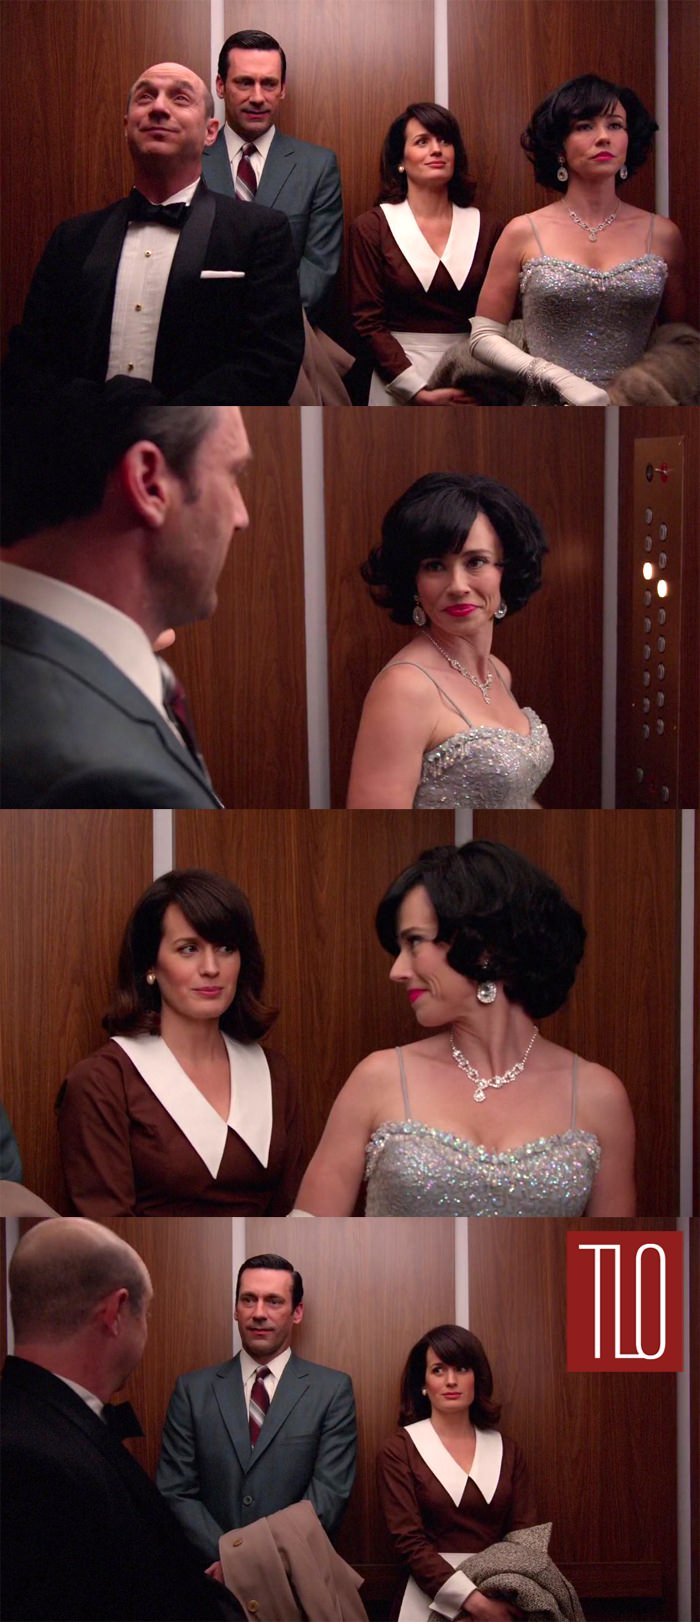 Mad-Men-Mad-Style-Television-Series-Season-7B-Episode-9-Costumes-Tom-Lorenzo-Site-TLO (11)